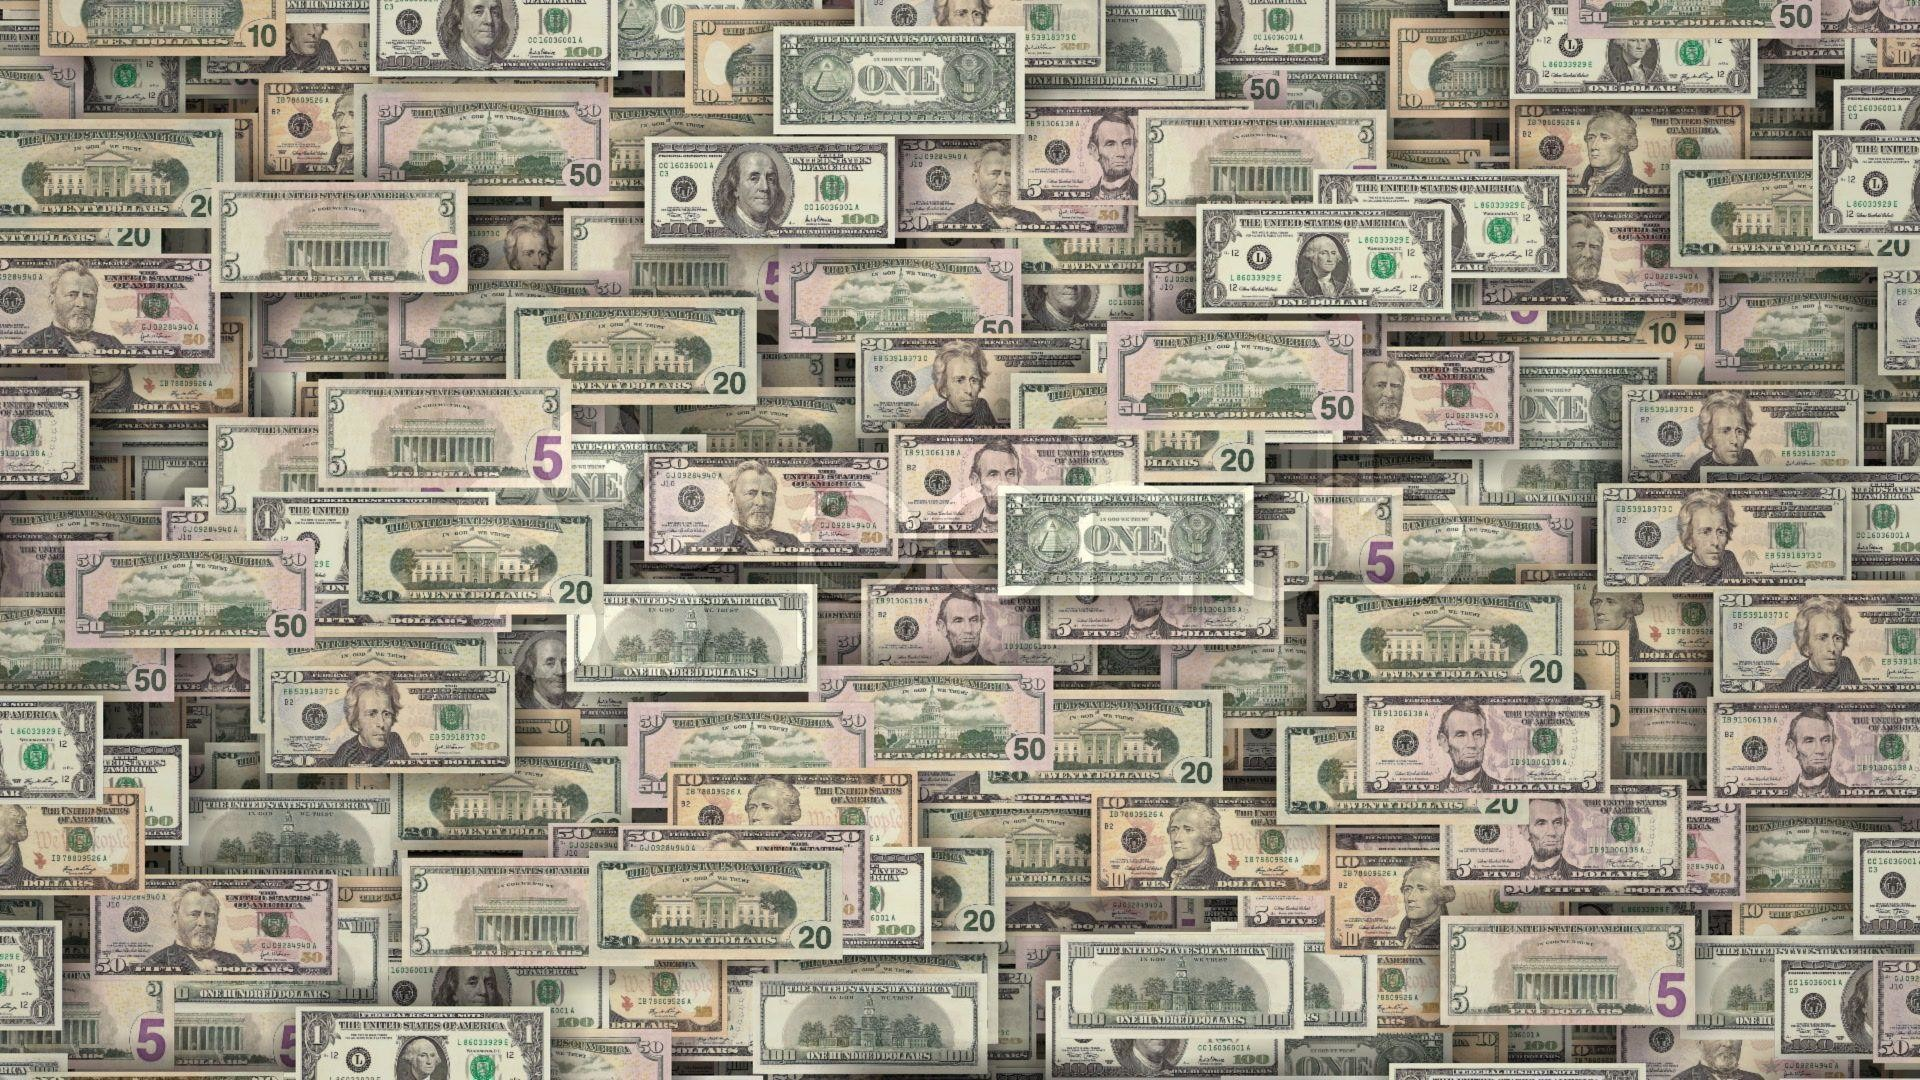 Stacks of Money Wallpaper  65  images  1920x1080 Money Wallpaper Pan videos 000272093   HD Stock Footage